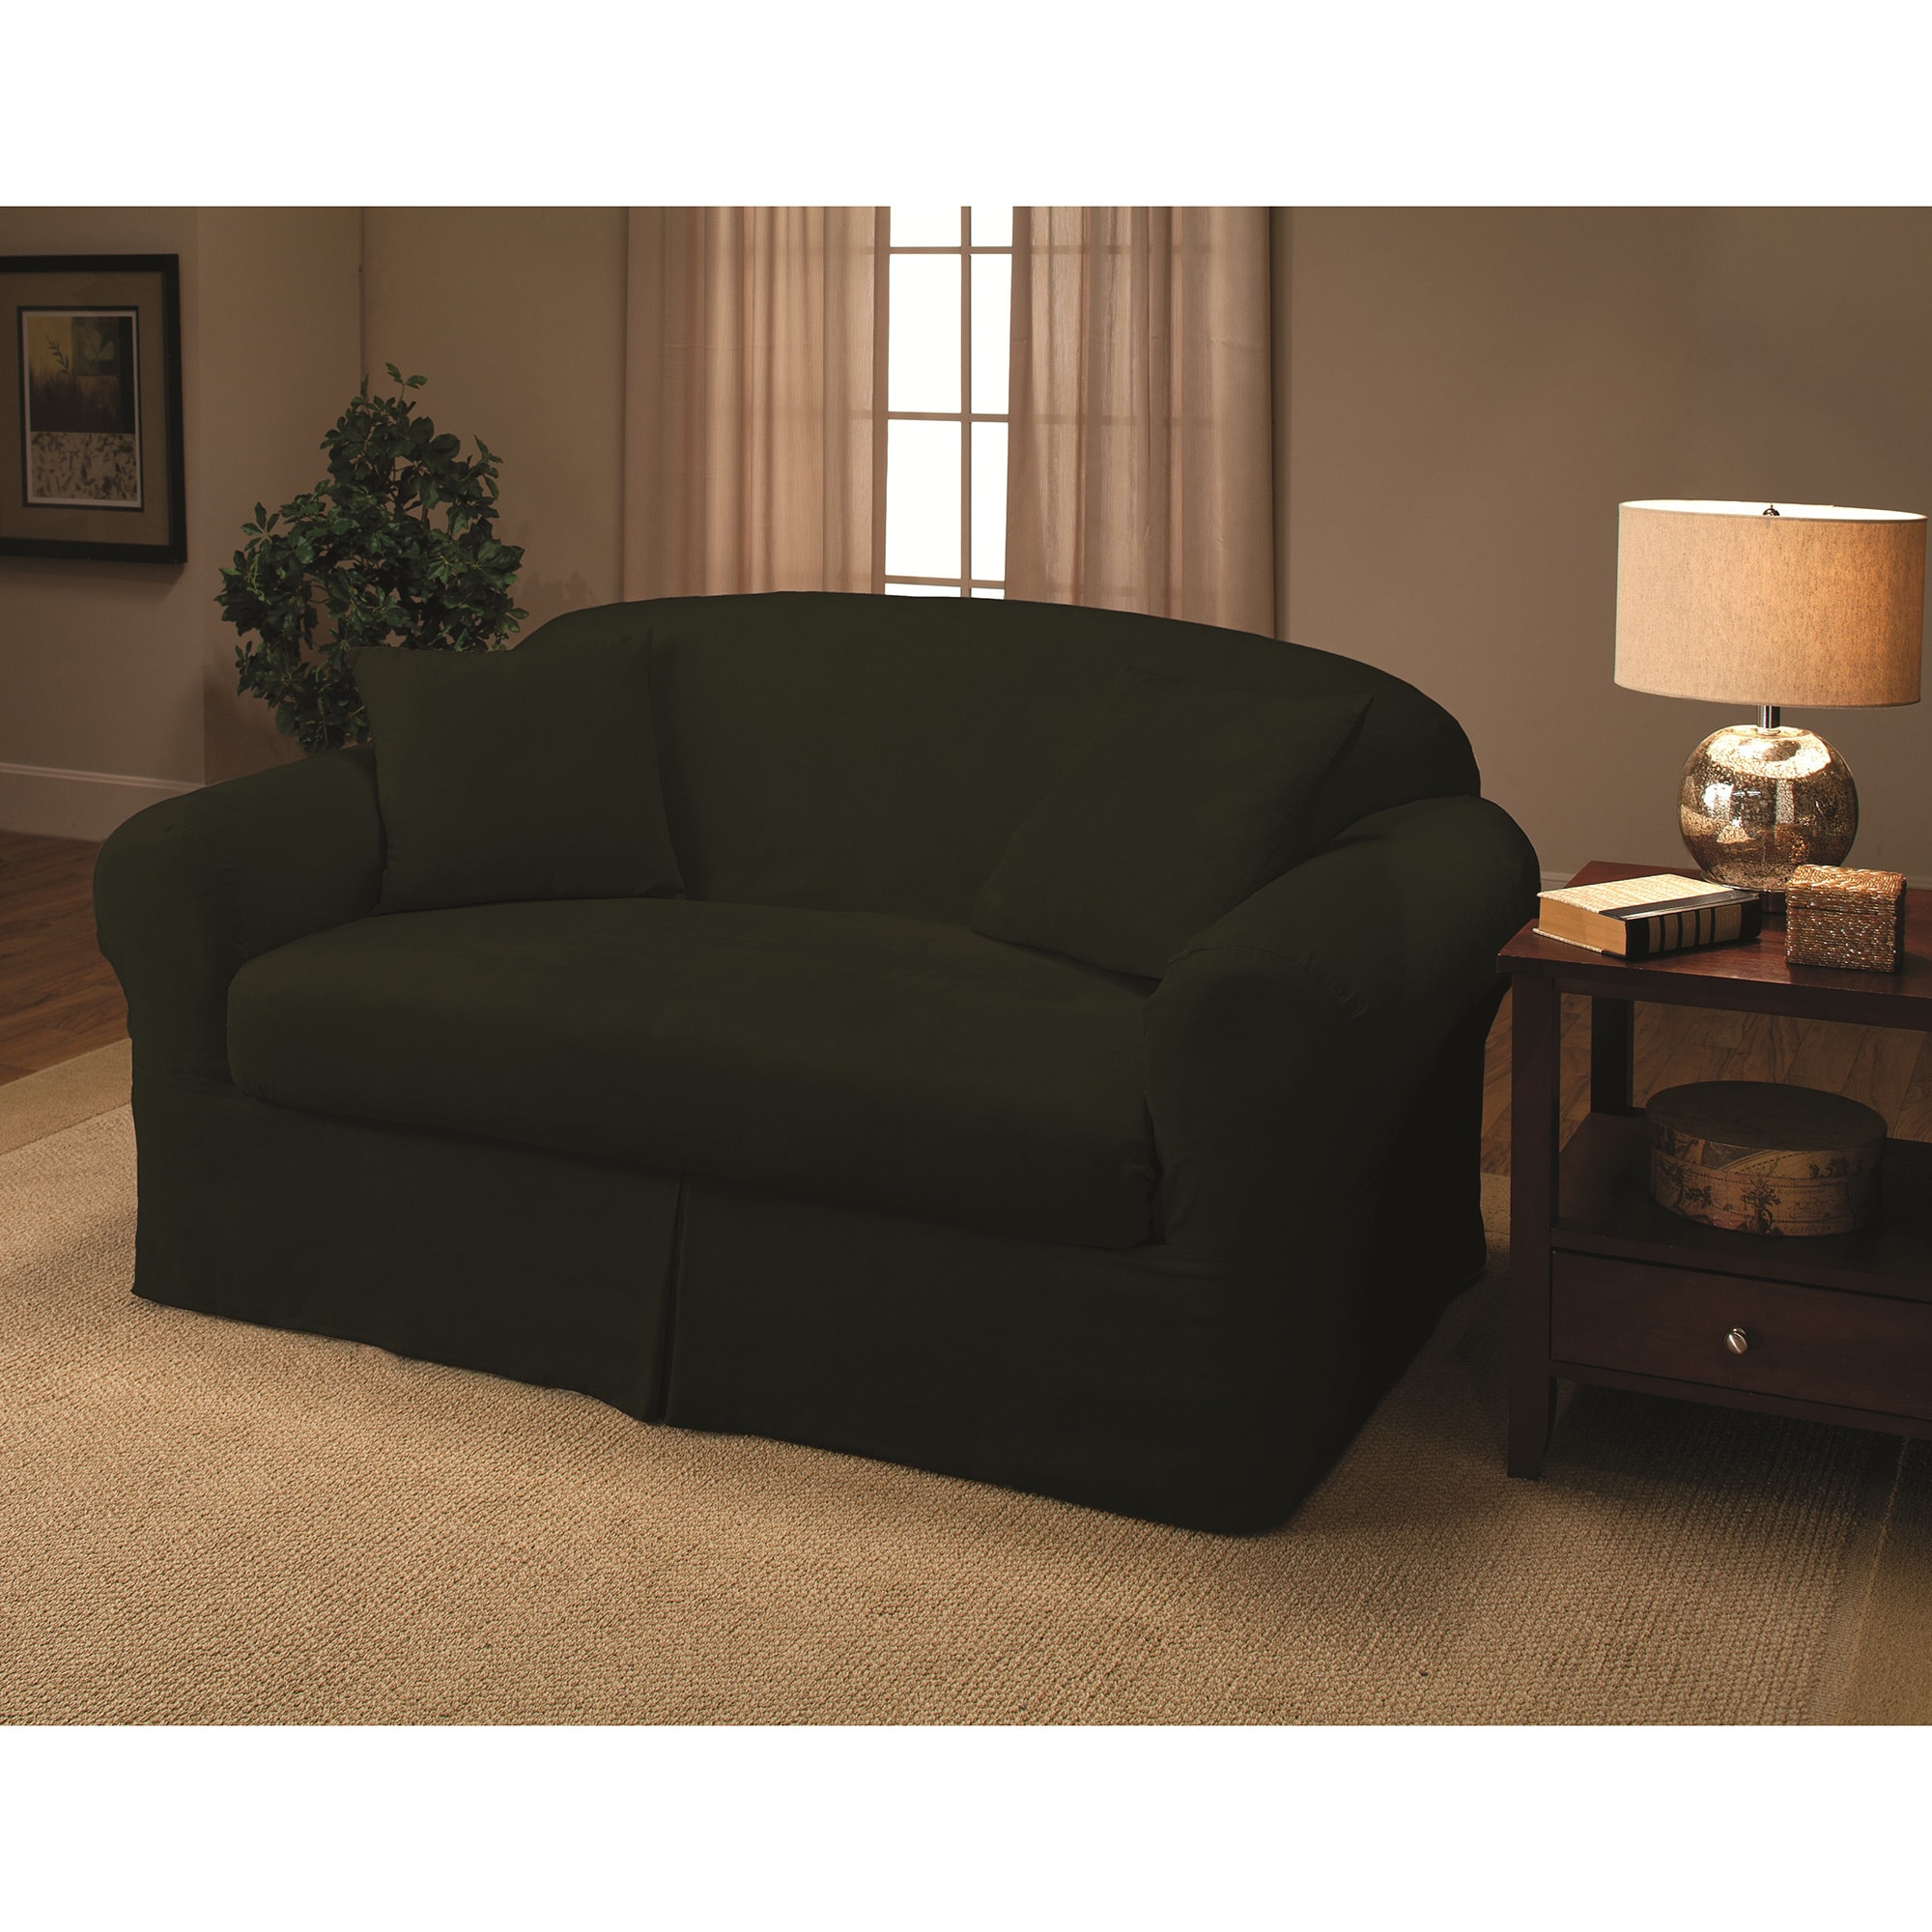 Sanctuary Suede 2-piece Loveseat Slipcover (Green) (Polye...